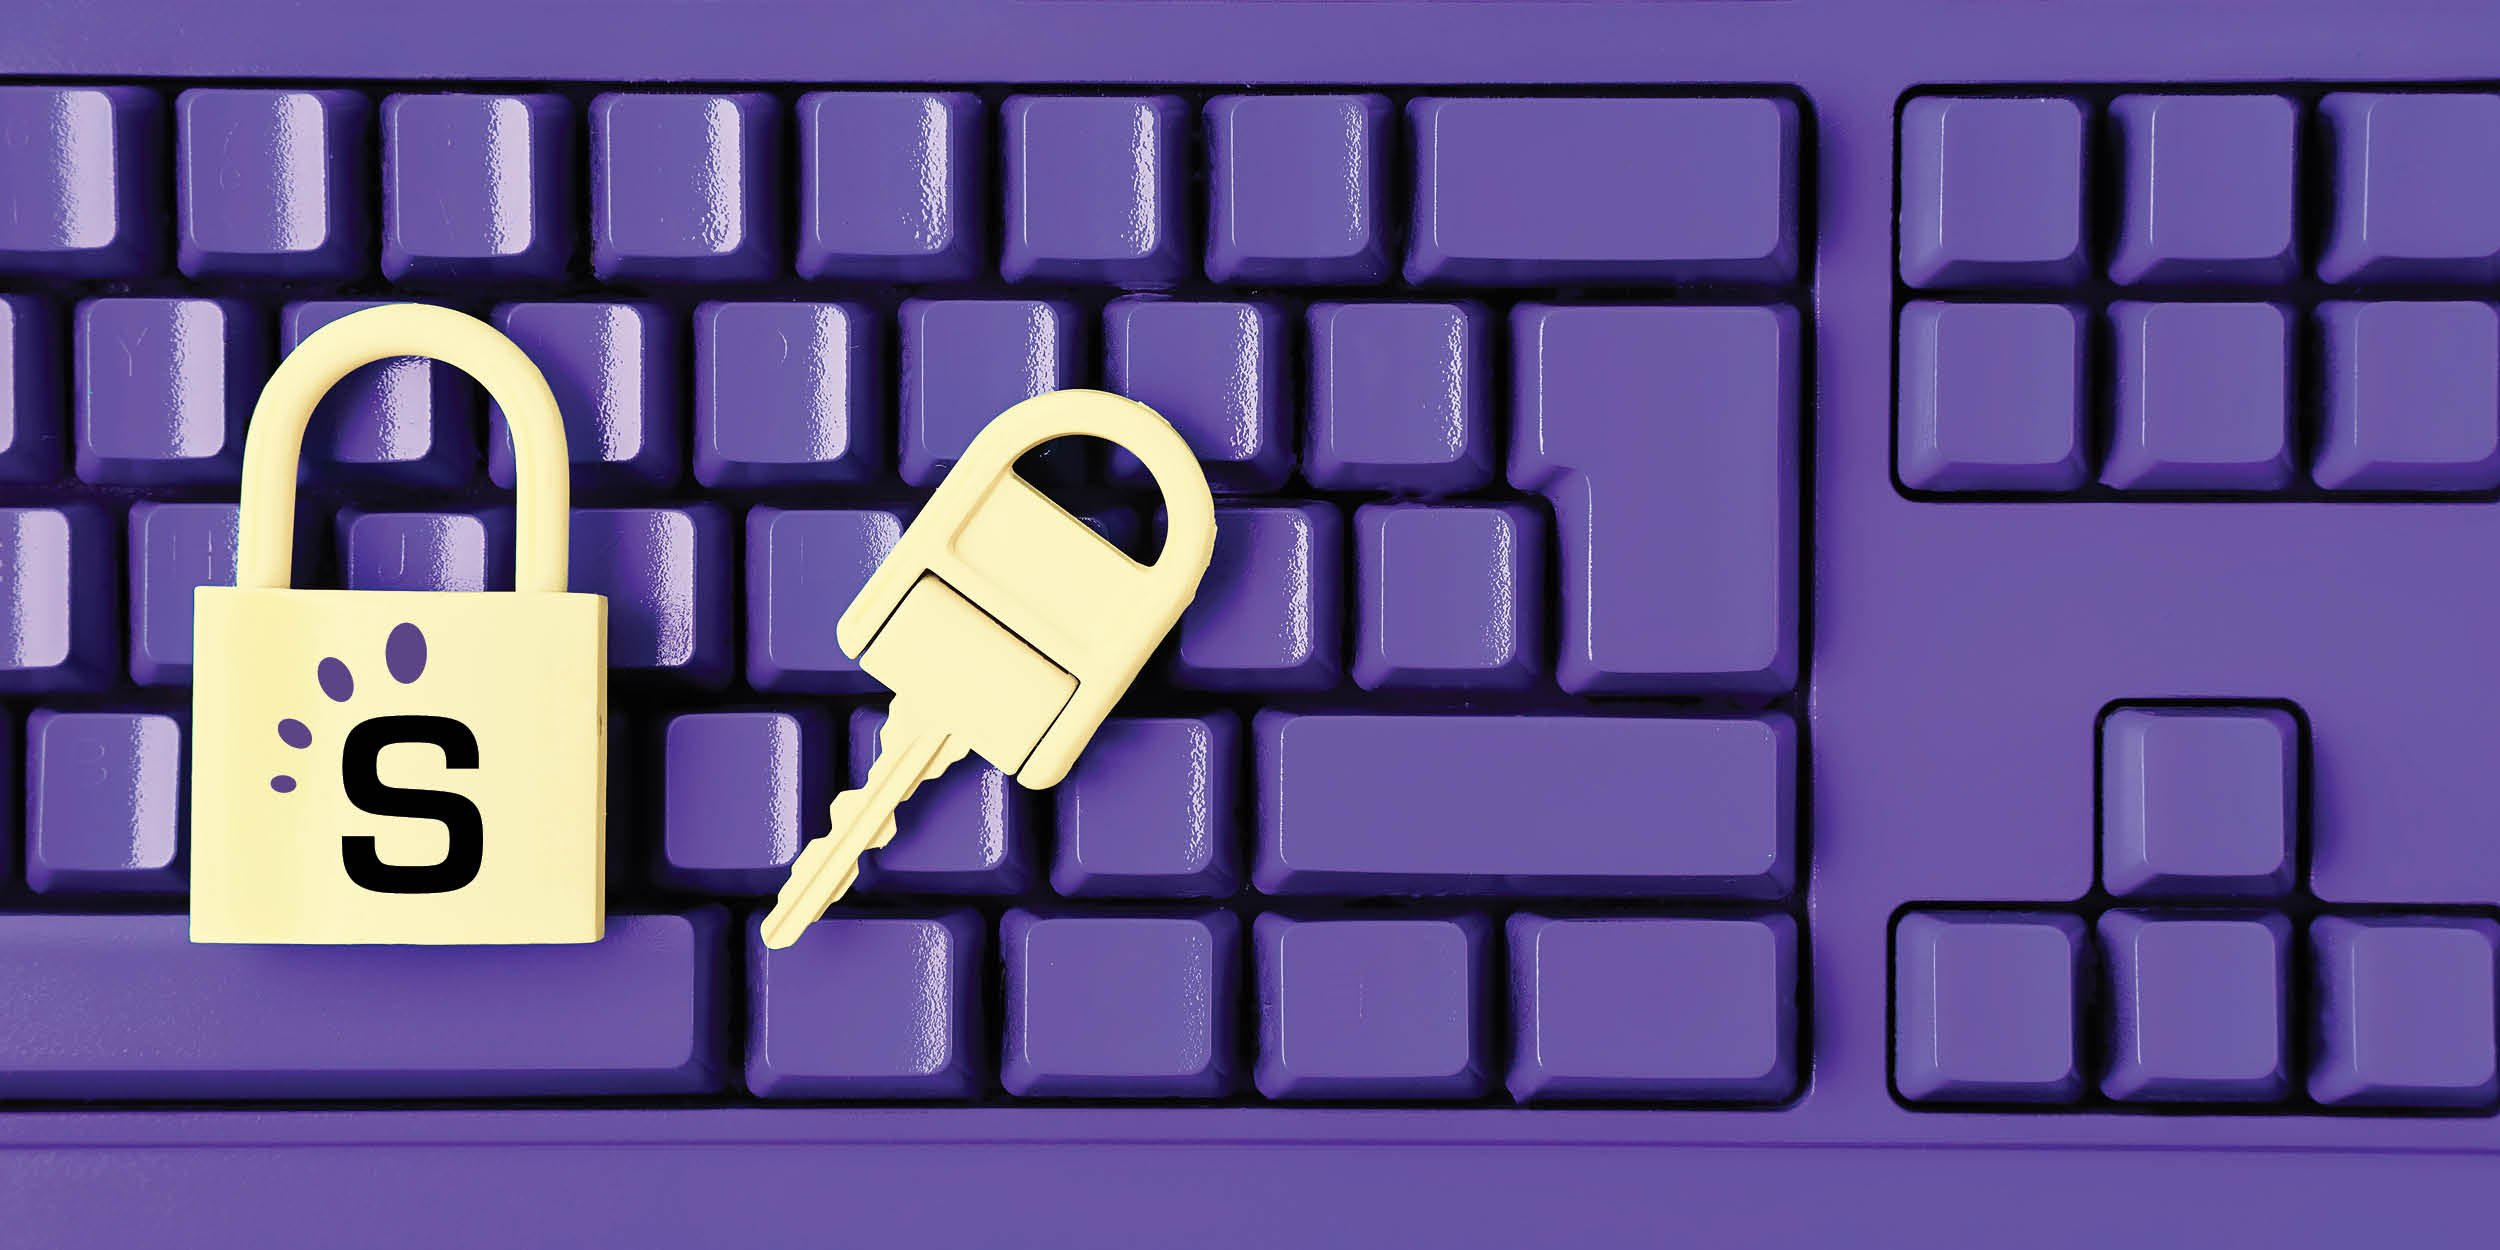 Purple keyboard with yellow lock and key